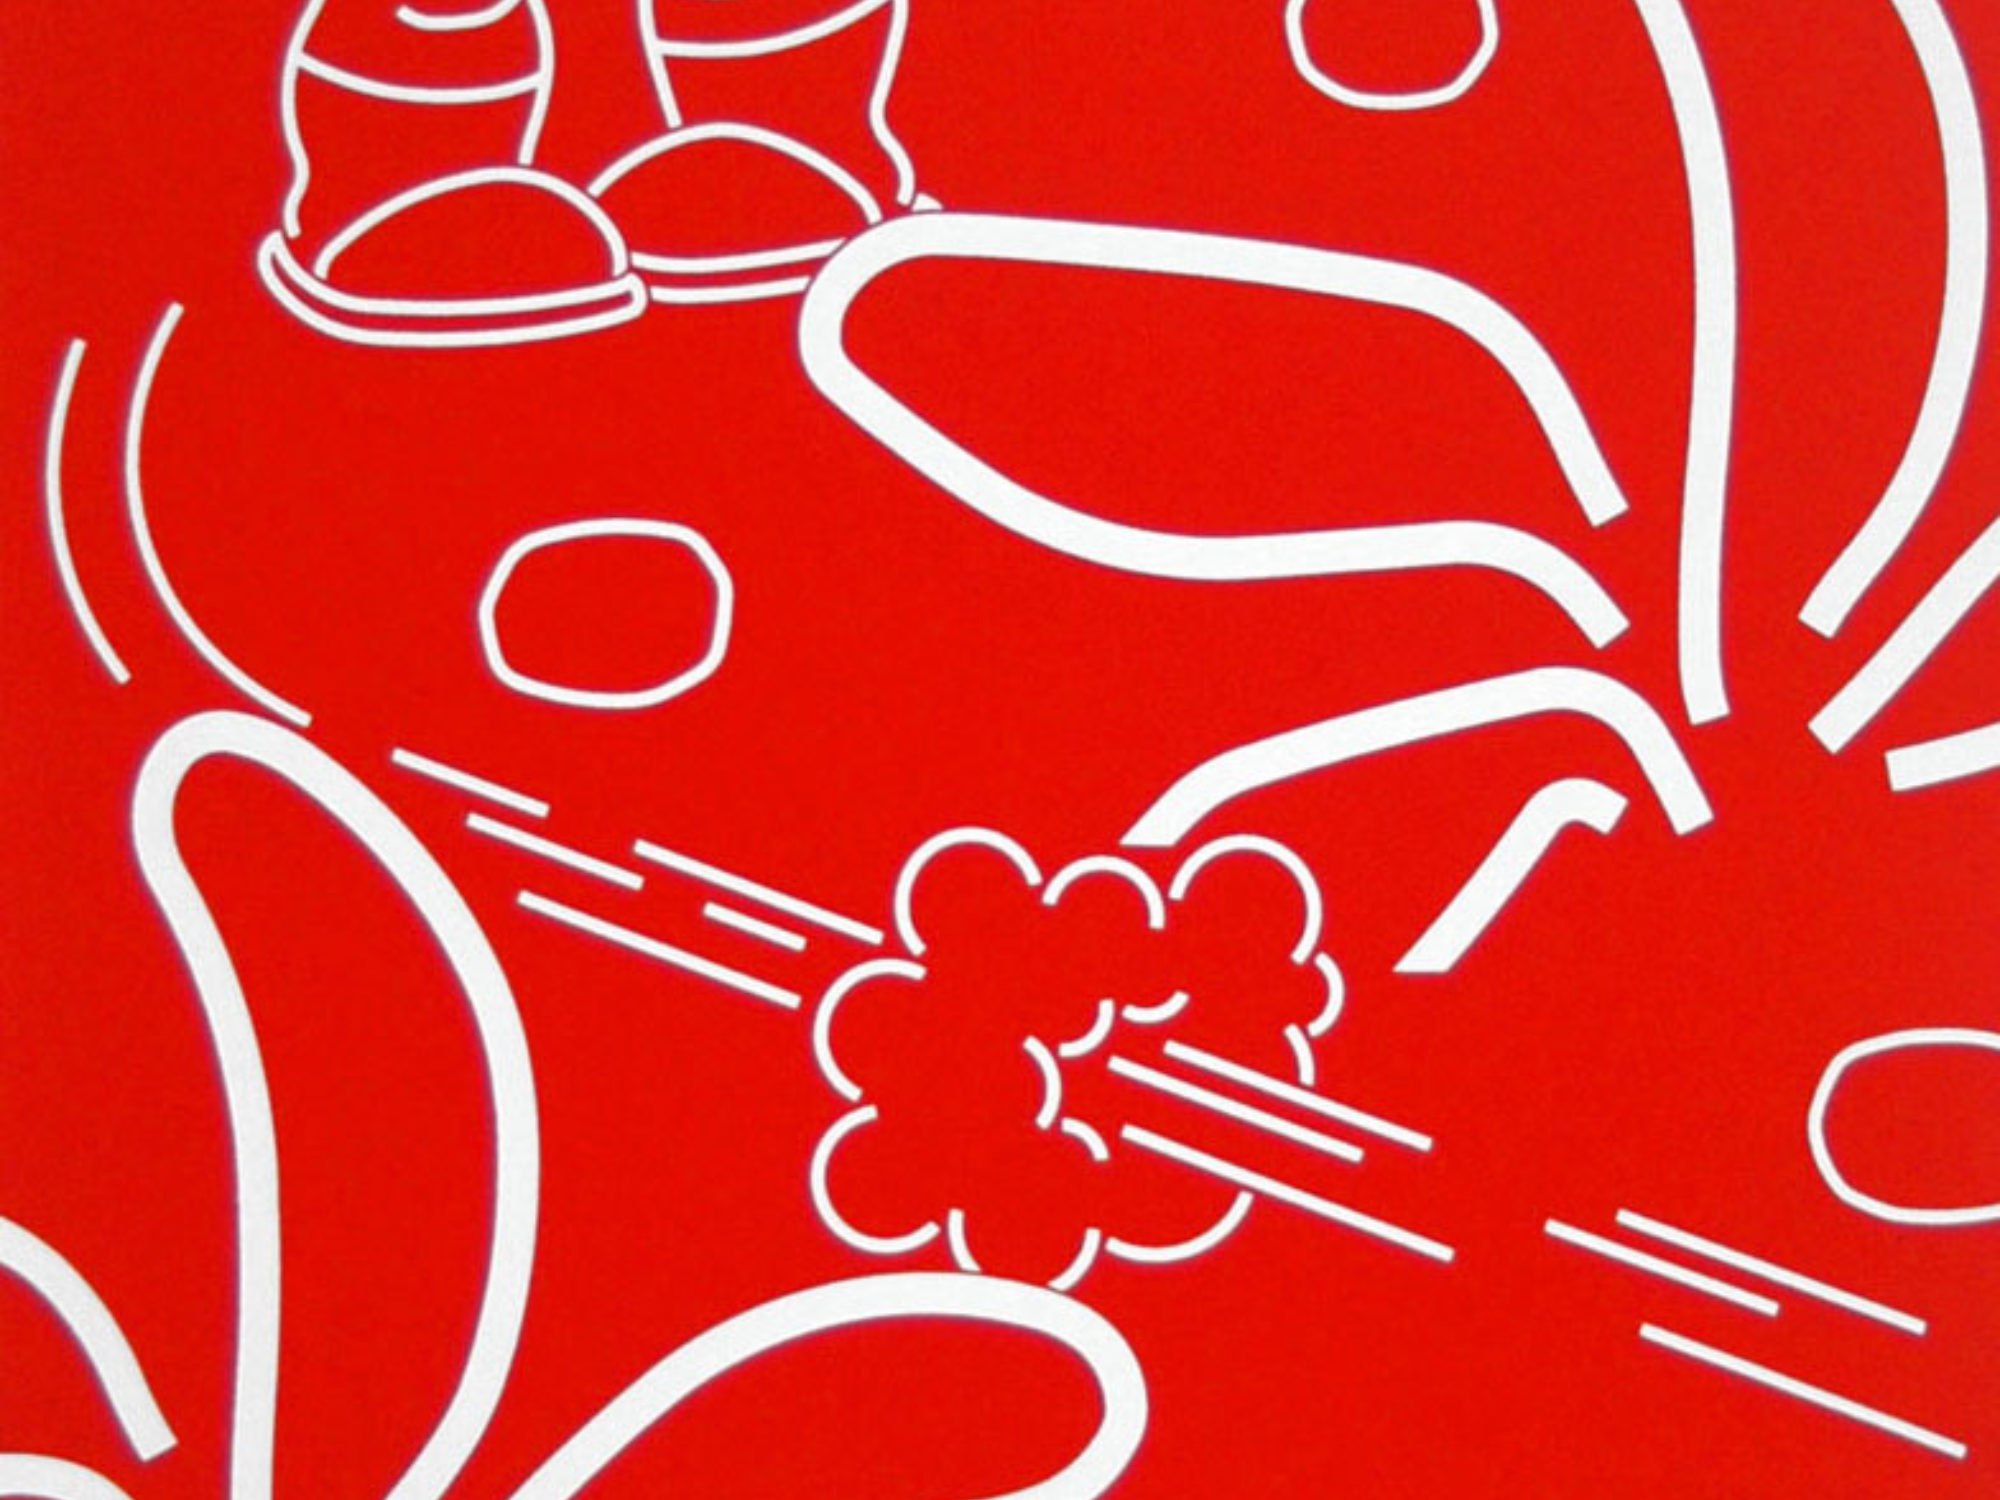 Cartoon drawing of feet and movement symbols in white on a red background.